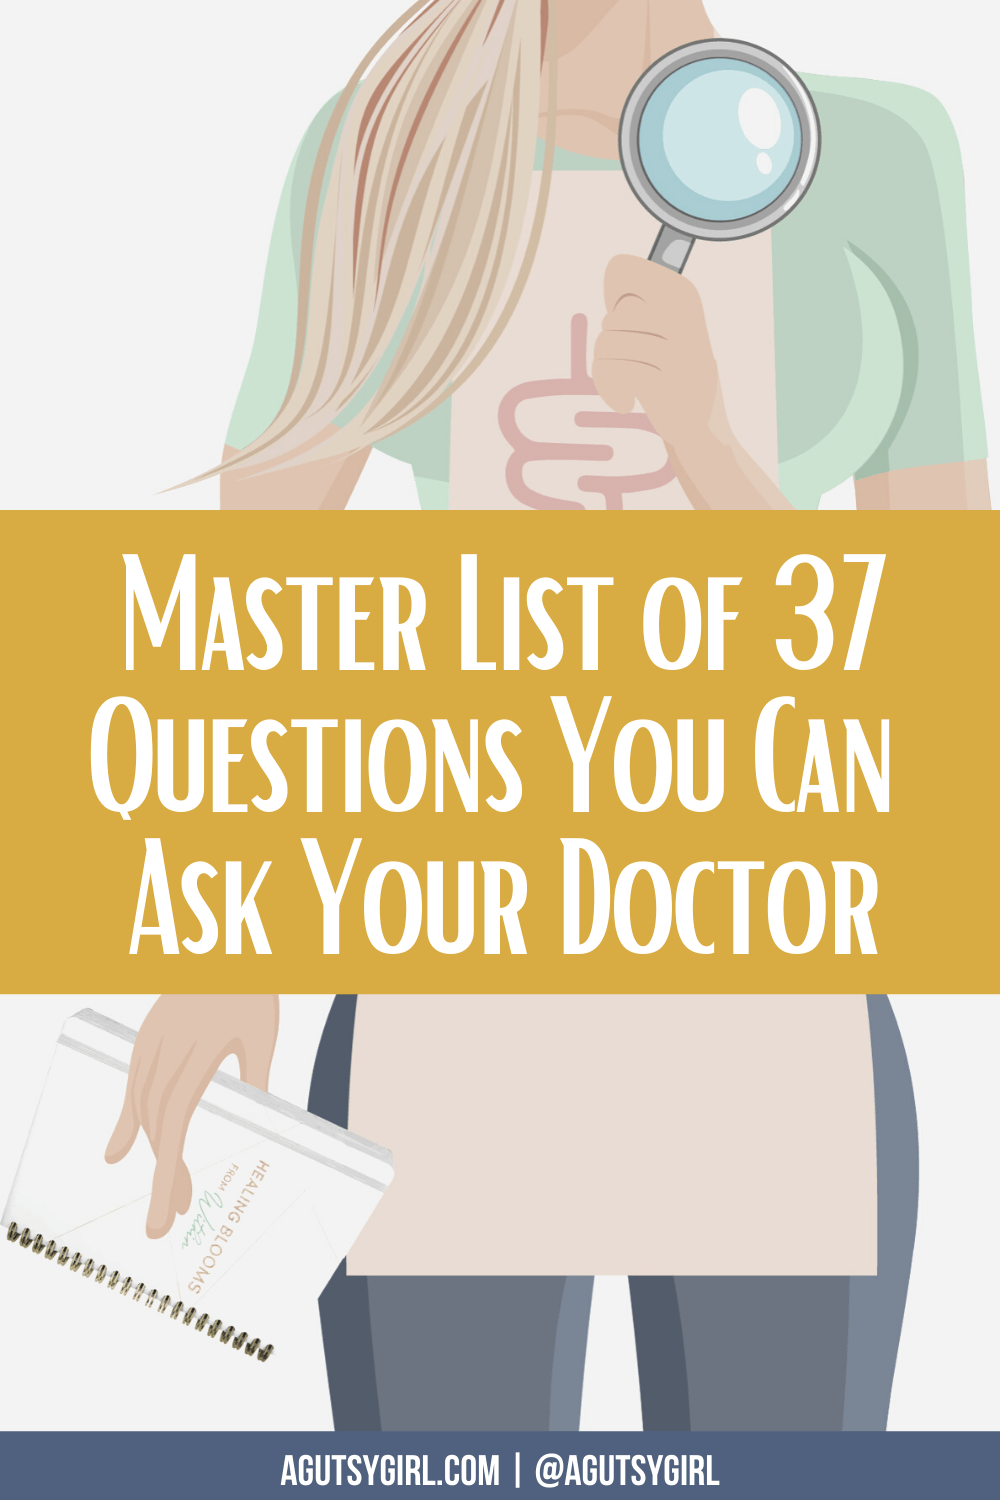 Master List of 37 Questions You Can Ask Your Doctor agutsygirl.com #guthealth #healthyliving #ibs #autoimmune